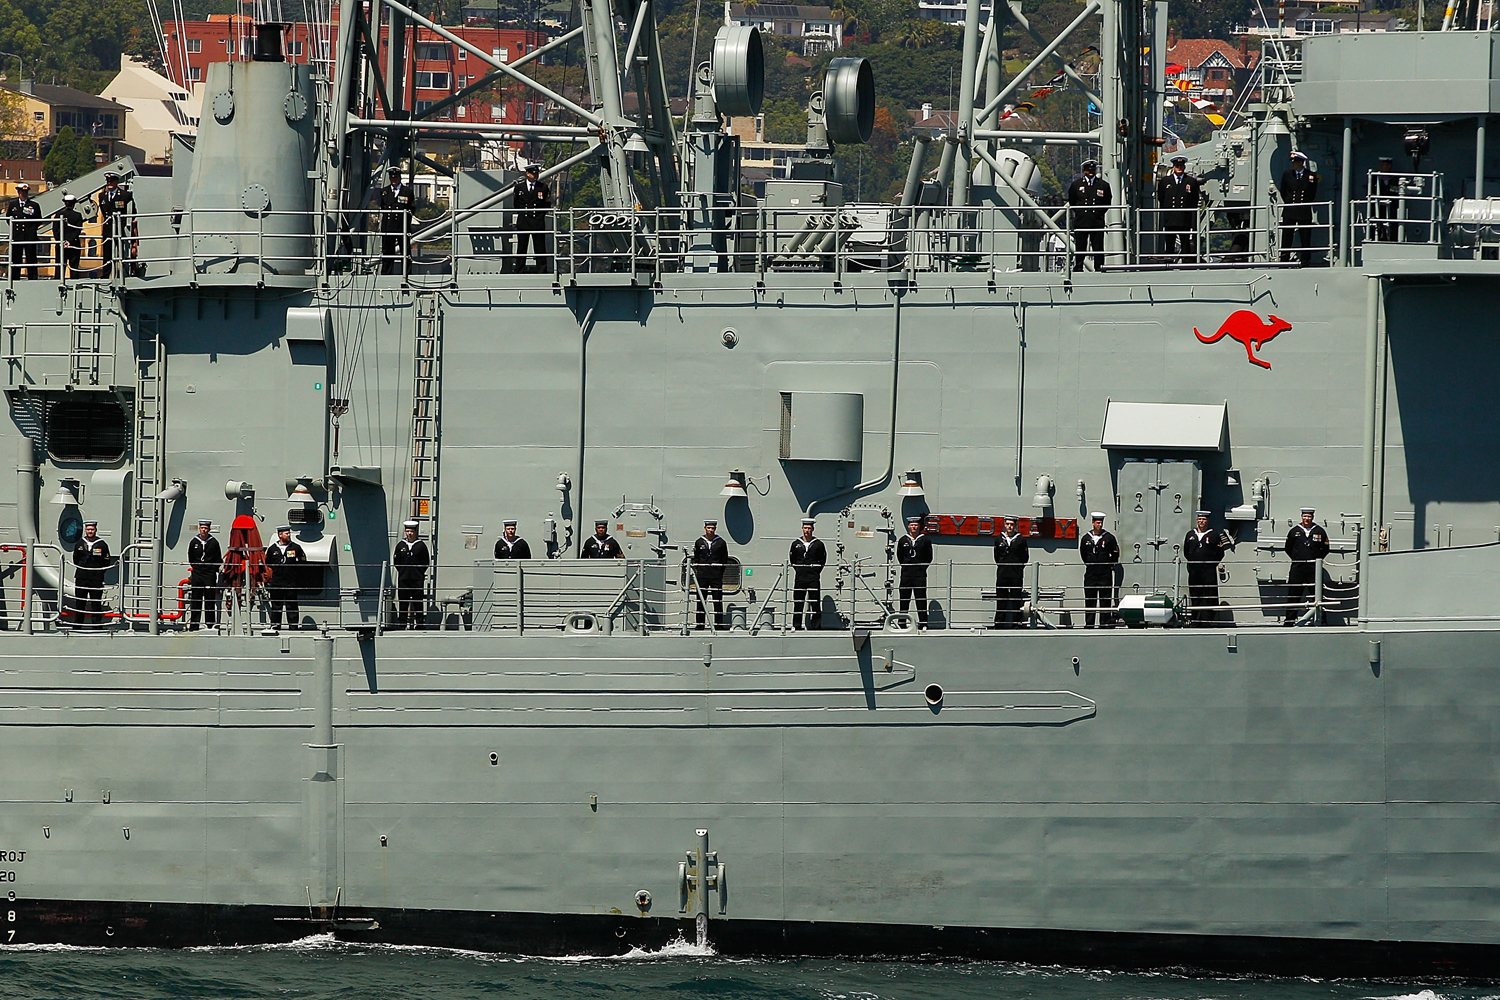 Sailors aboard the HMAS Darwin stand in formation on Oct. 5, 2013 in Sydney, Australia